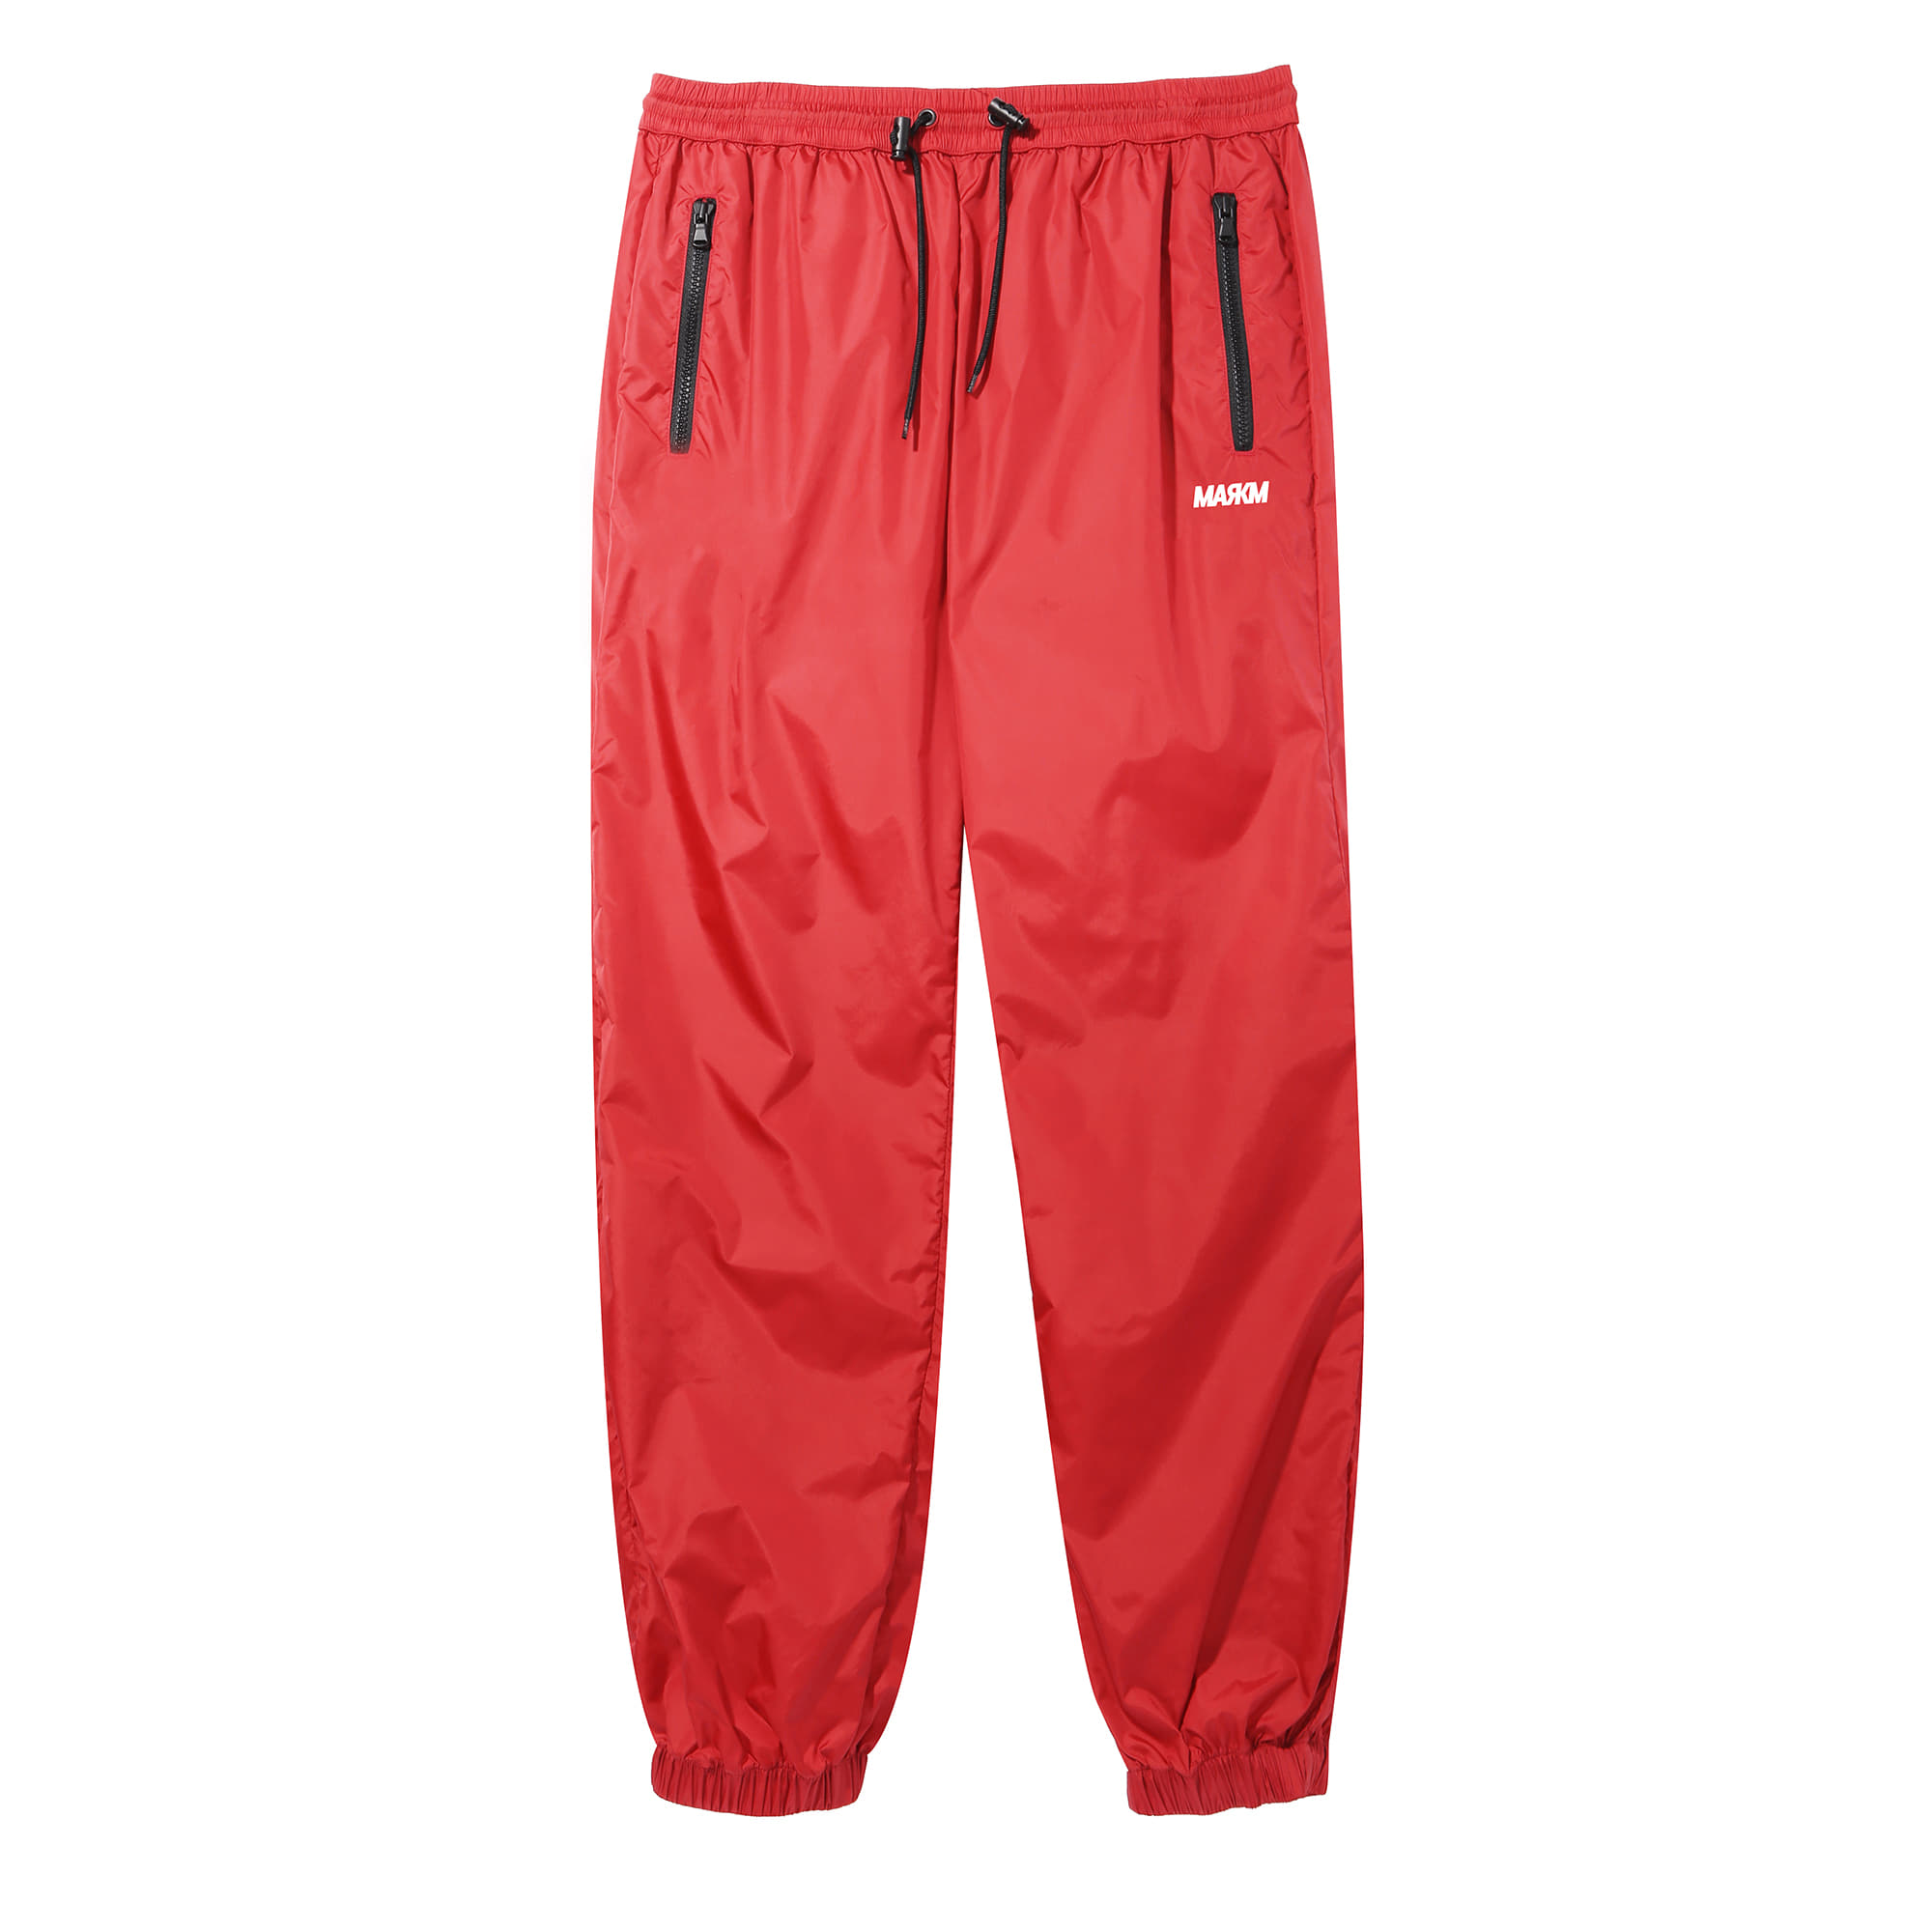 19FW MM Jogger Pants MYFAI4509